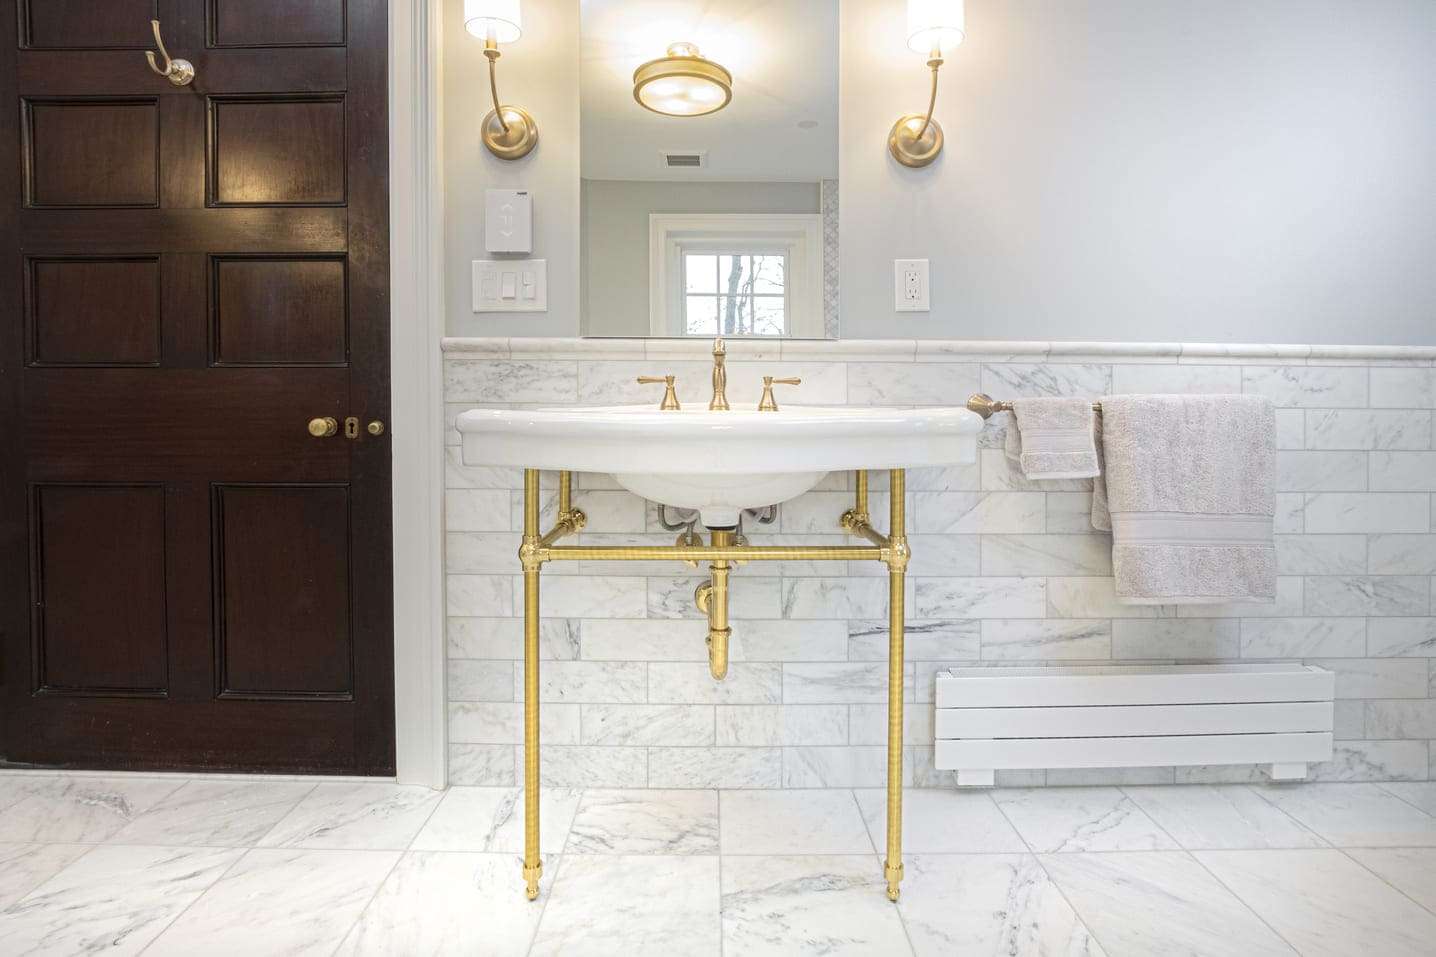 Stunning master bathroom remodel in historic Philadelphia home